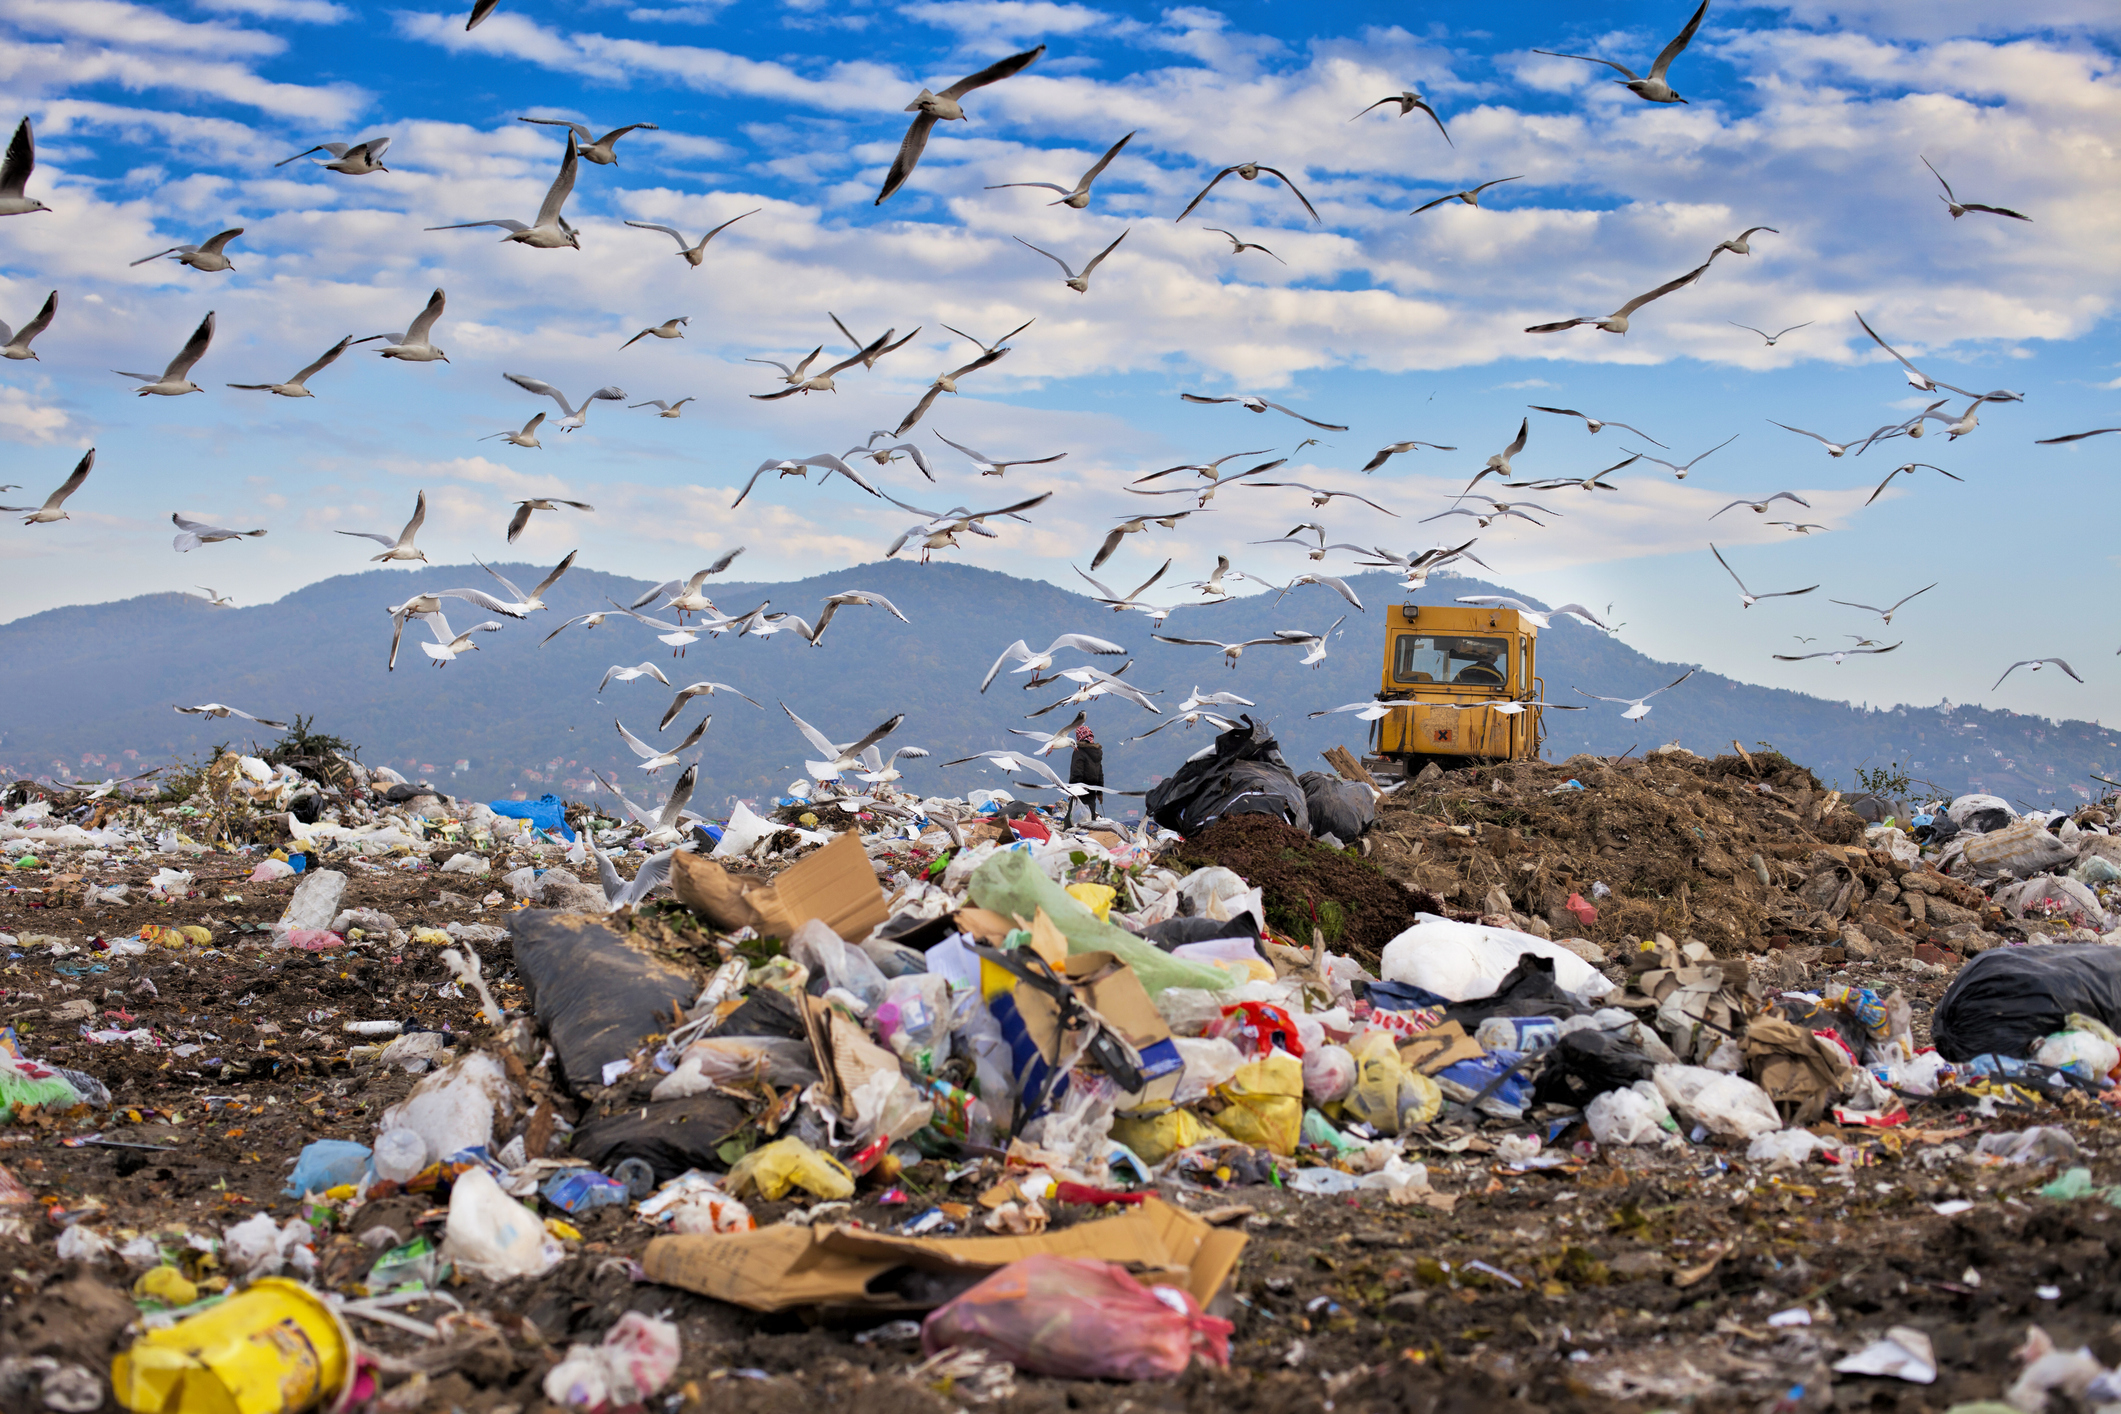 research paper landfills 01092006 07:09 a compact guide to landfill operation: machinery, management and misconceptions landfill operators tread a fine line they have to maximize operation efficiency with the least cost while also ensuring worker safety and promoting a positive public perception of the site.